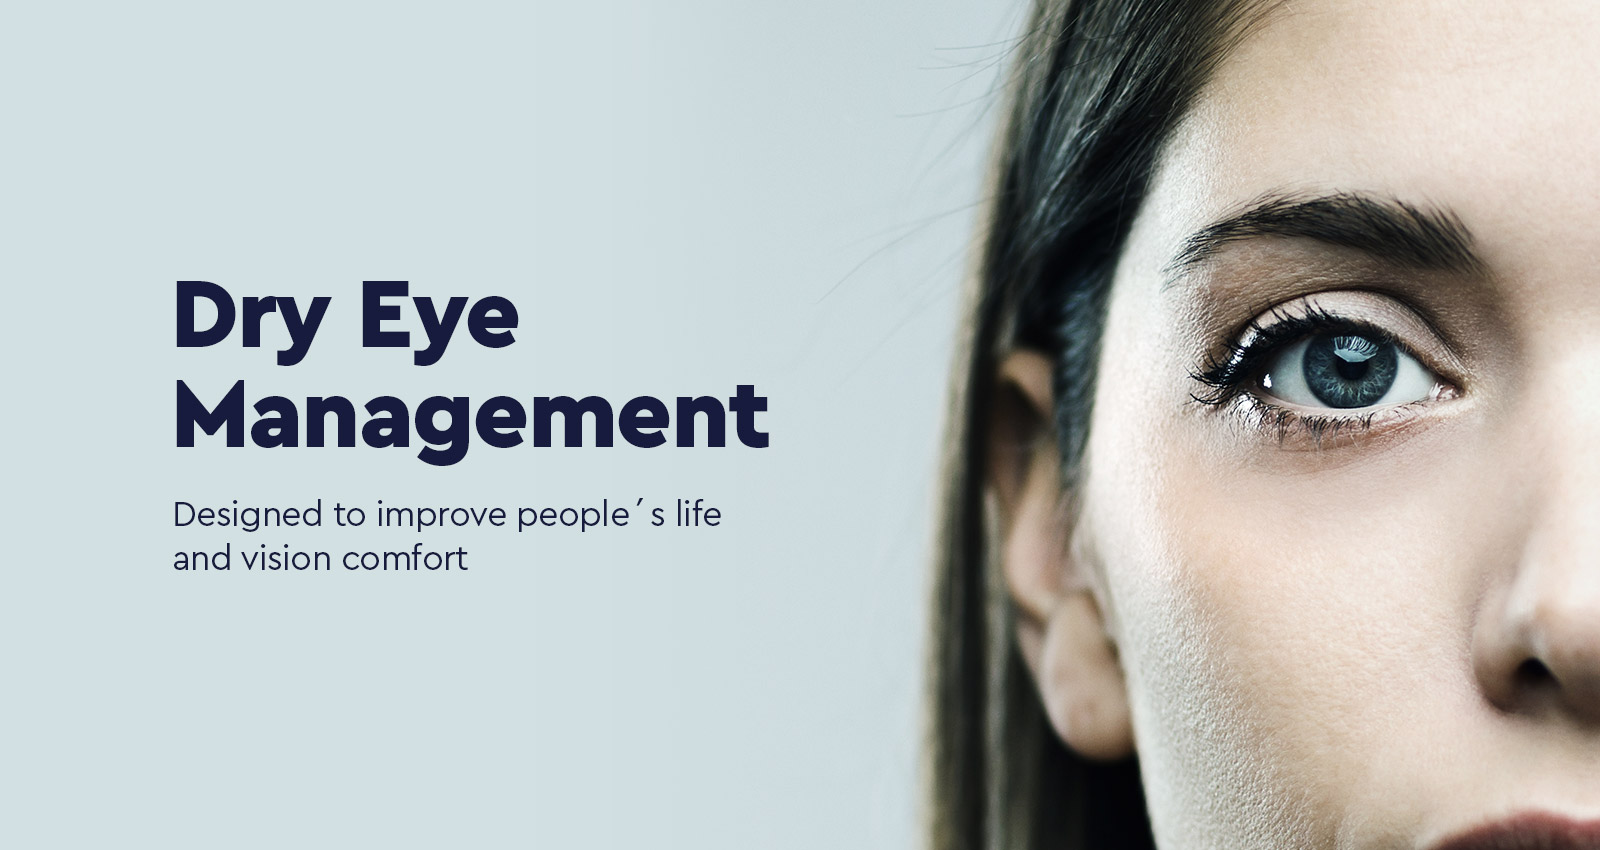 Dry Eye Management